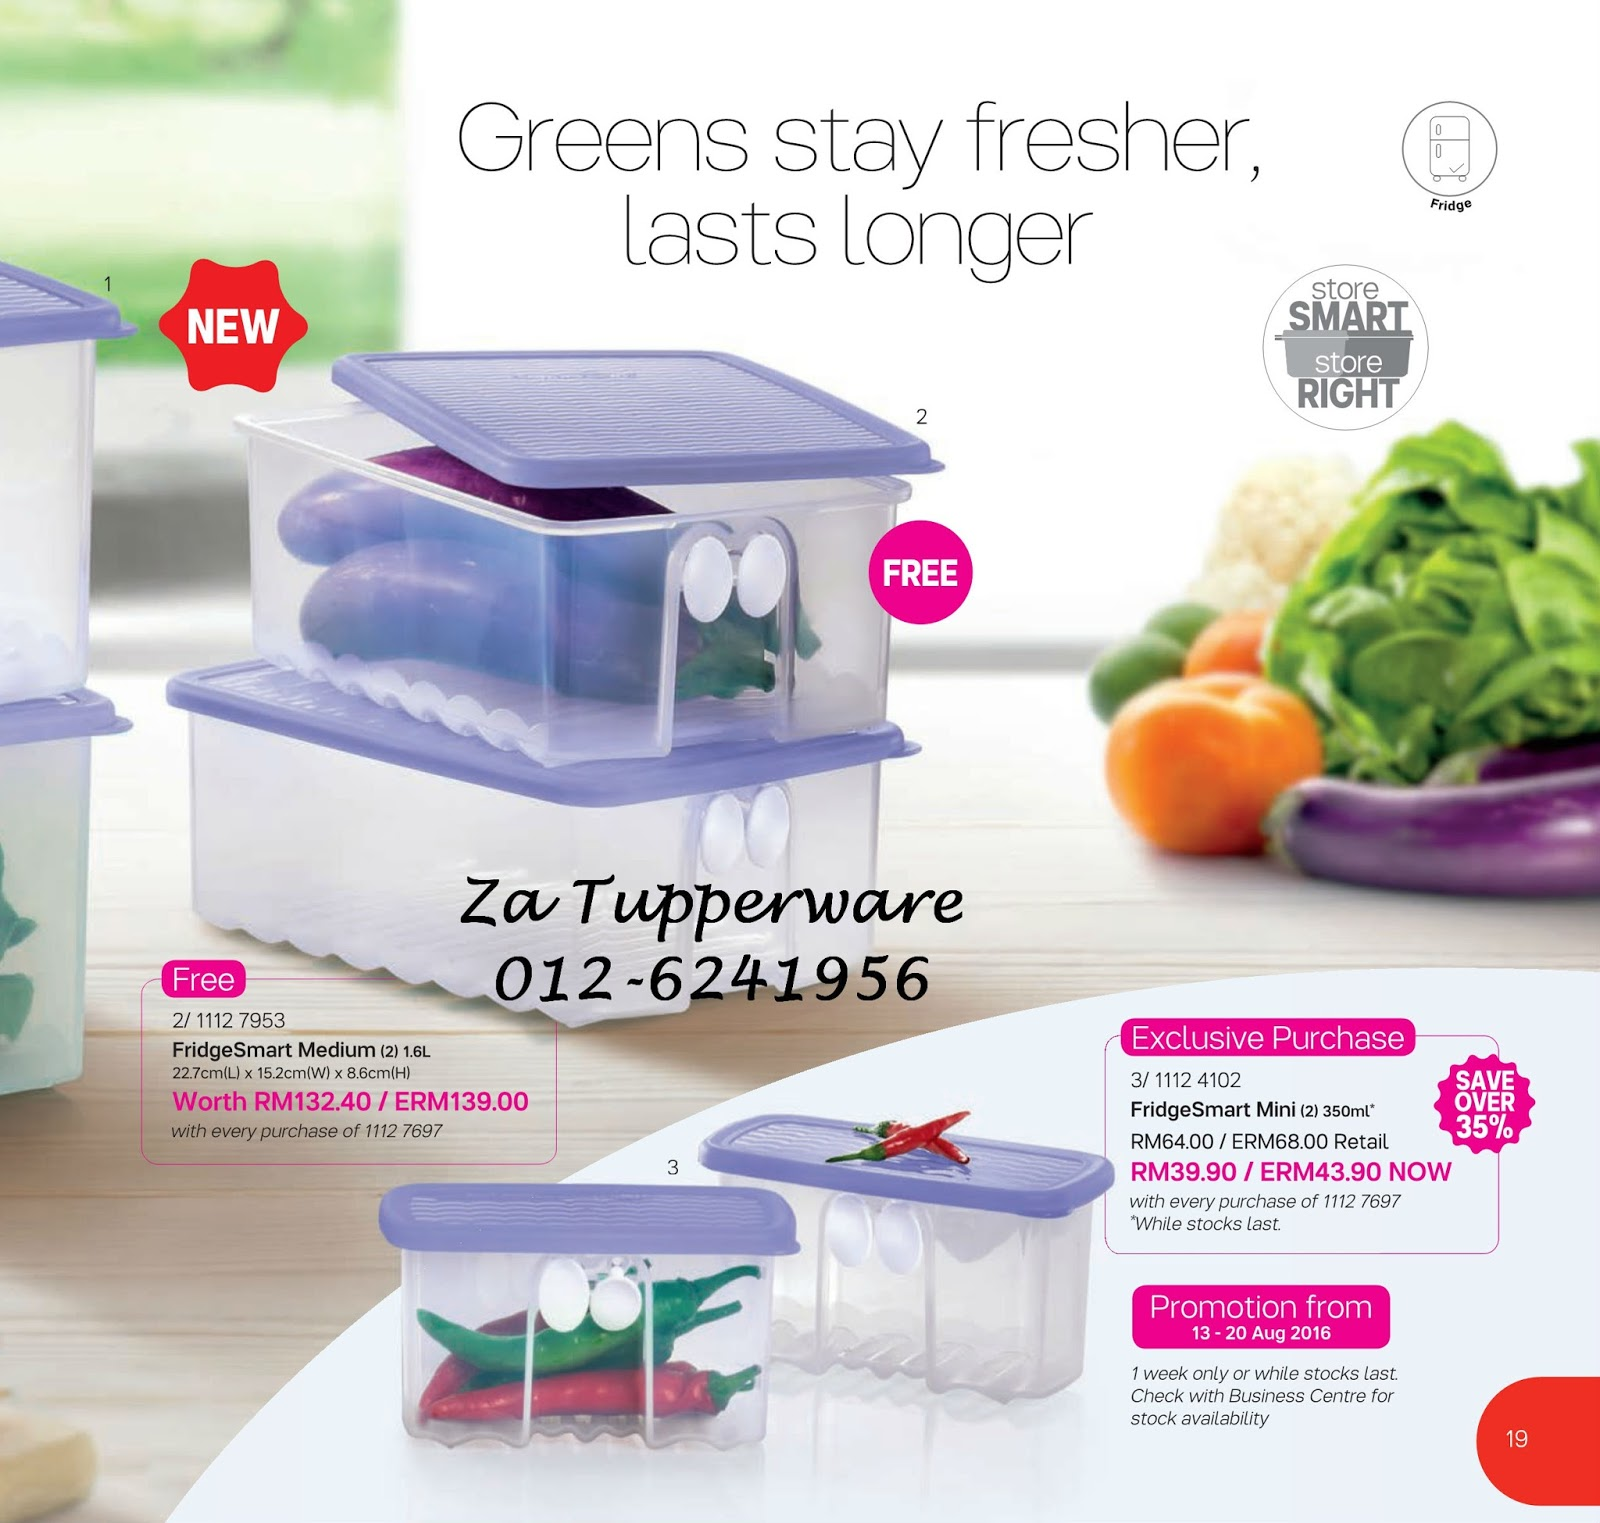 za tupperware brands malaysia latest tupperware catalogue 2016. Black Bedroom Furniture Sets. Home Design Ideas